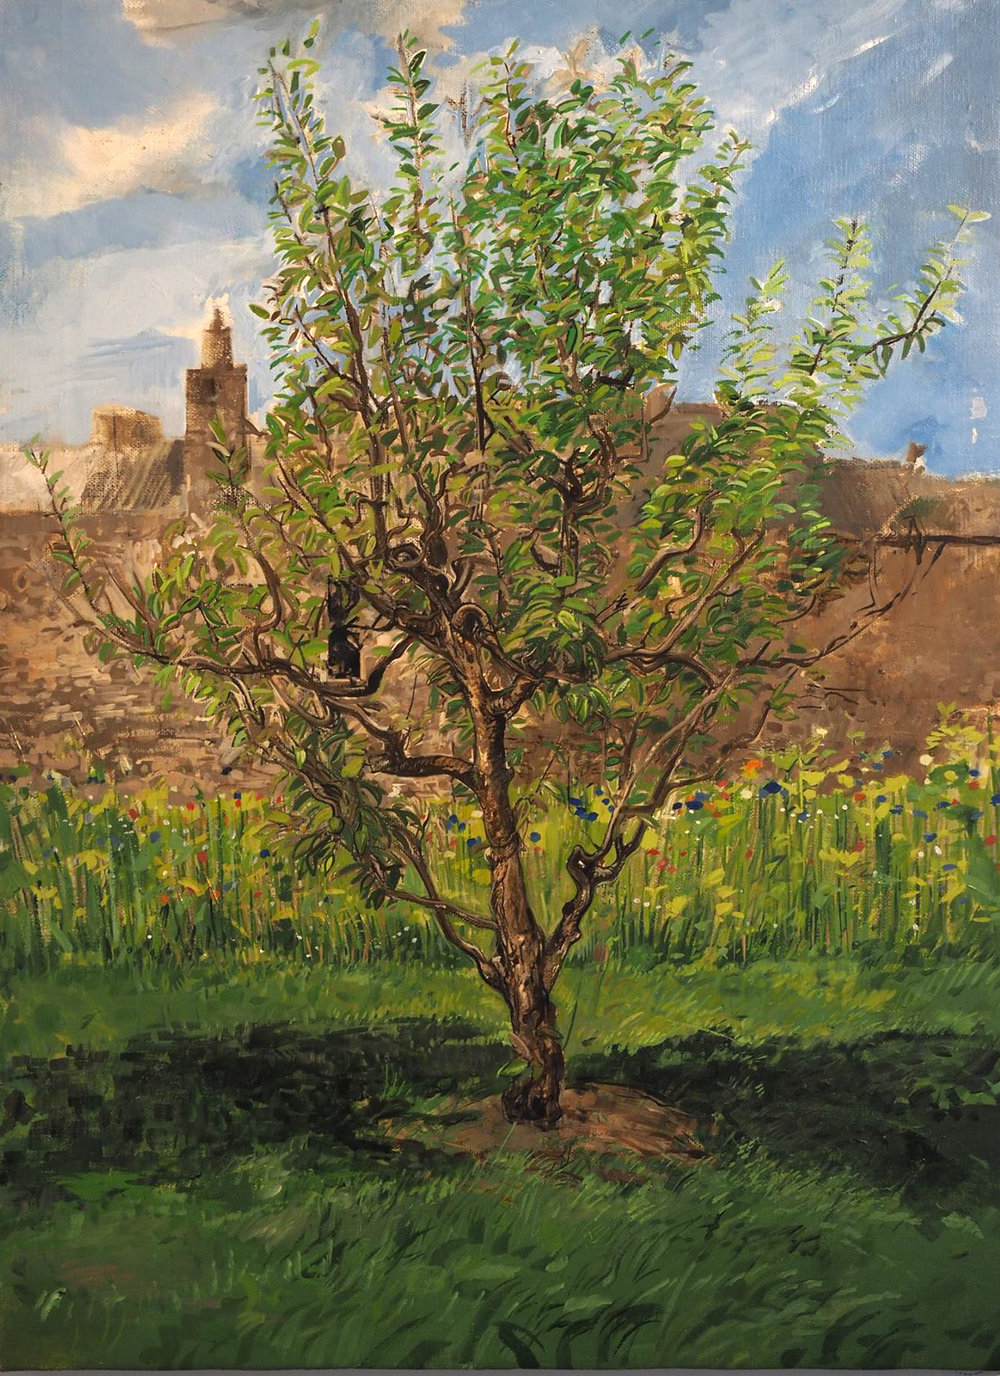 Robert Weiss,  Pear Tree , acrylic on canvas, 30 x 40 inches, image courtesy of Jave Yoshimoto